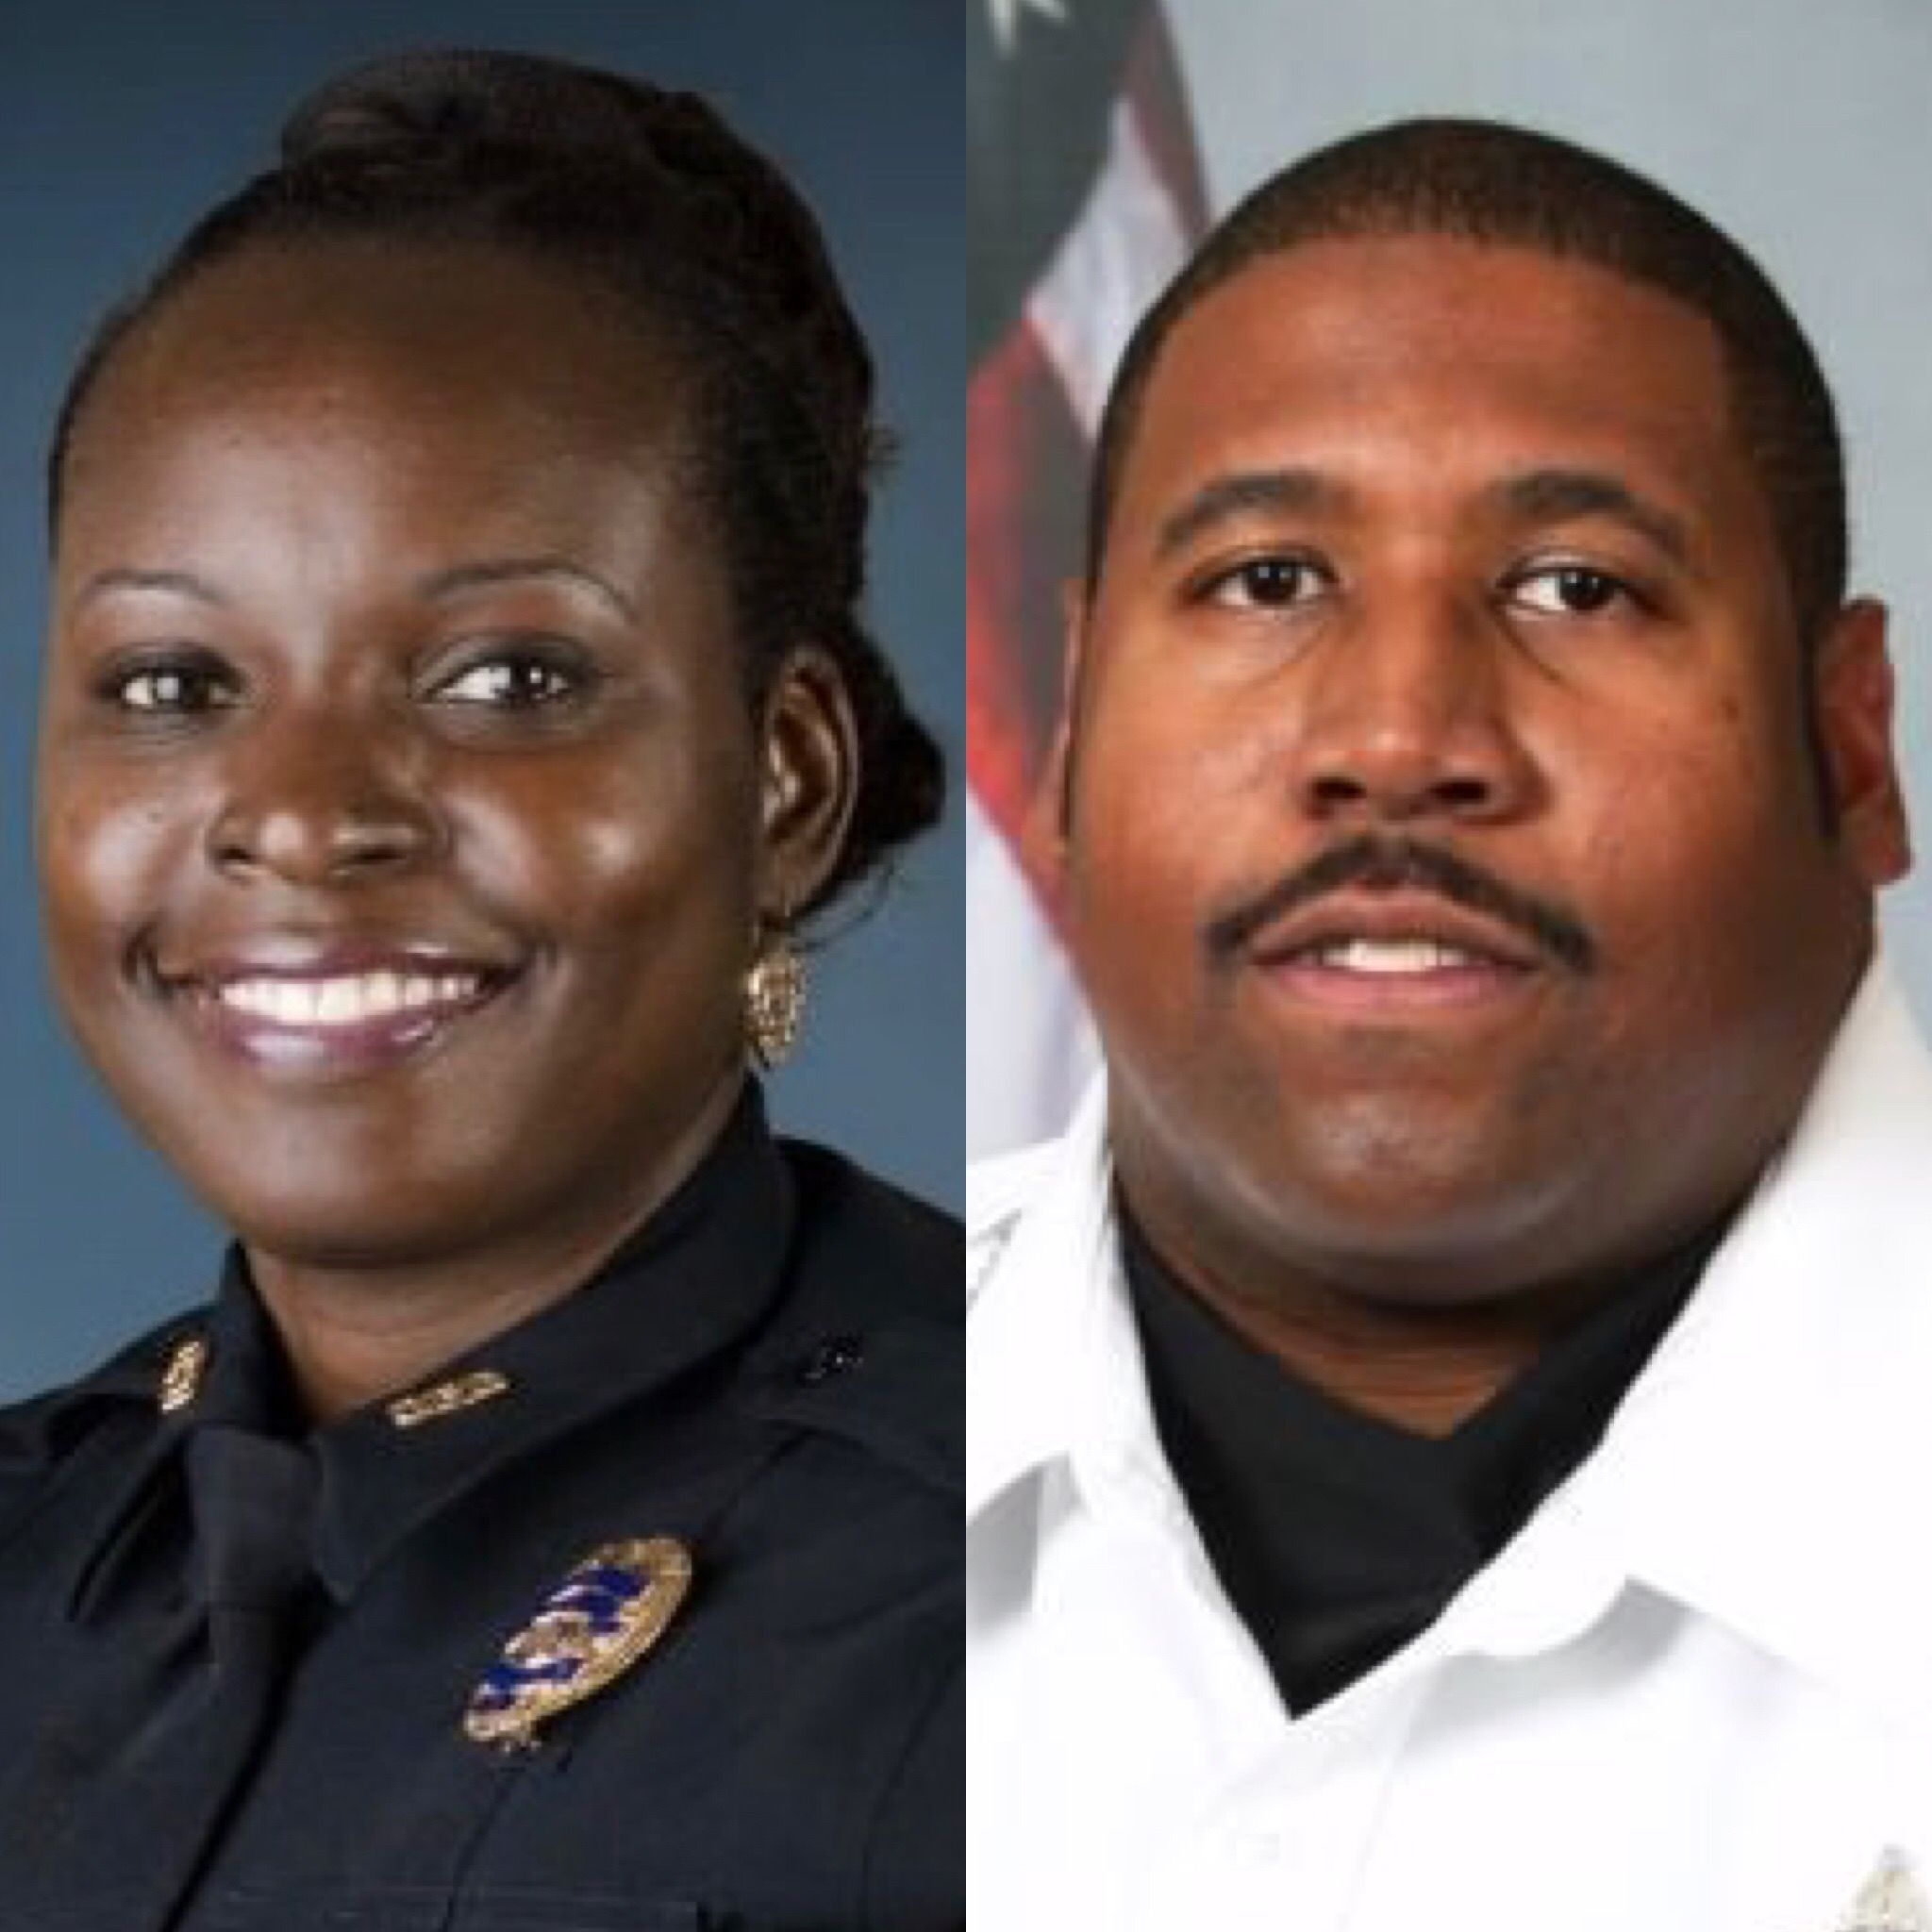 Deputy First Class Norman Lewis of the Orange County Sheriff's Office (R)  killed in